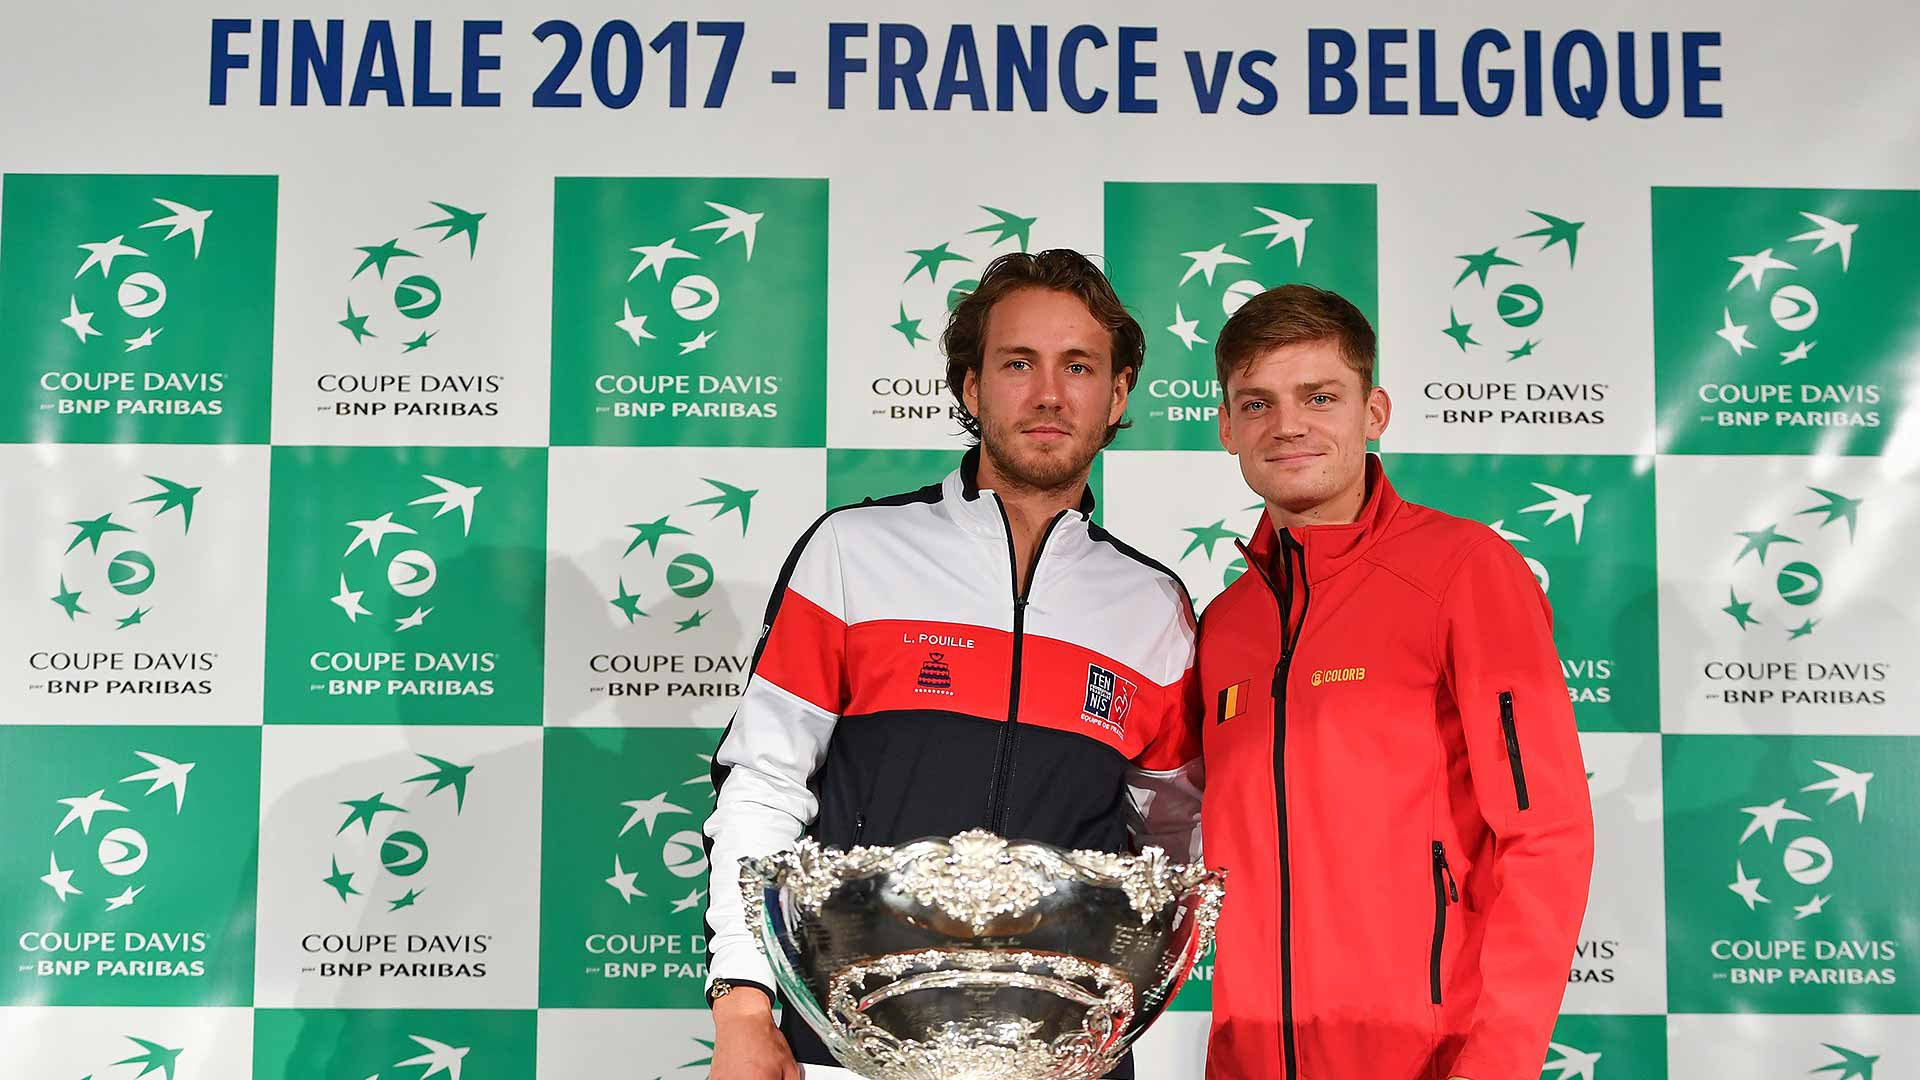 Pouille, Goffin